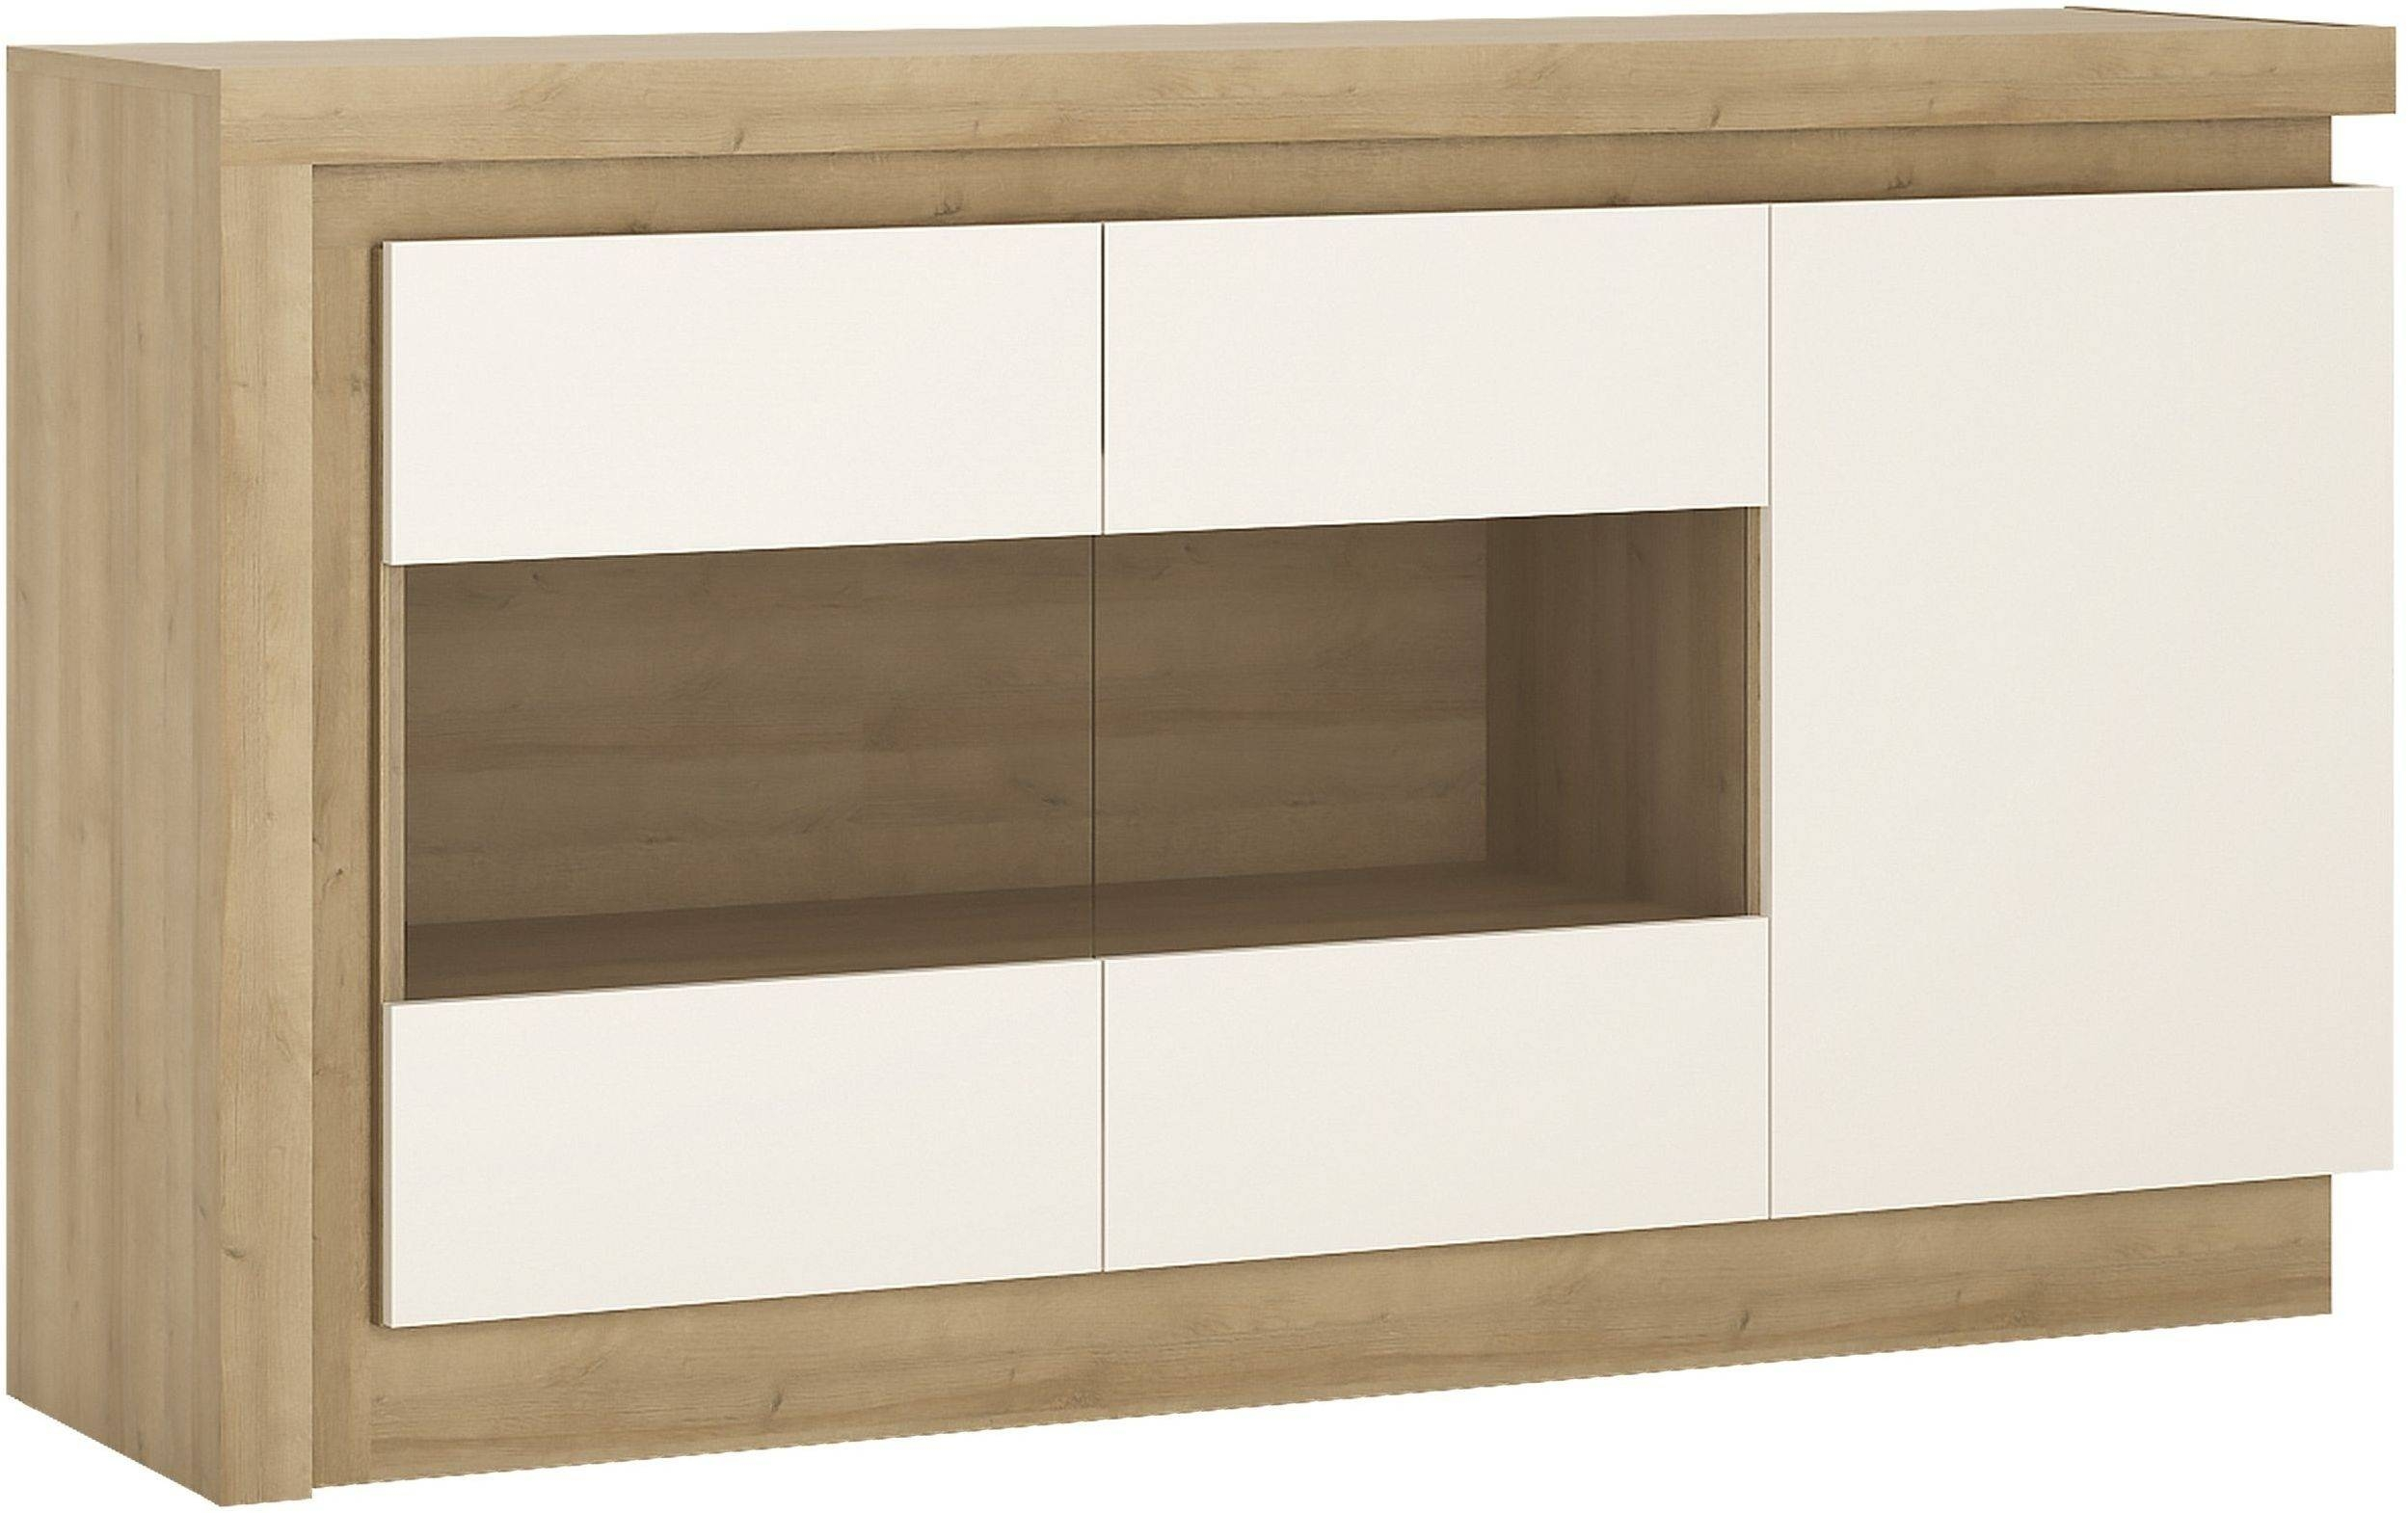 Buy Lyon Riviera Oak And White High Gloss Sideboard - 3 Door intended for White High Gloss Sideboards (Image 7 of 30)